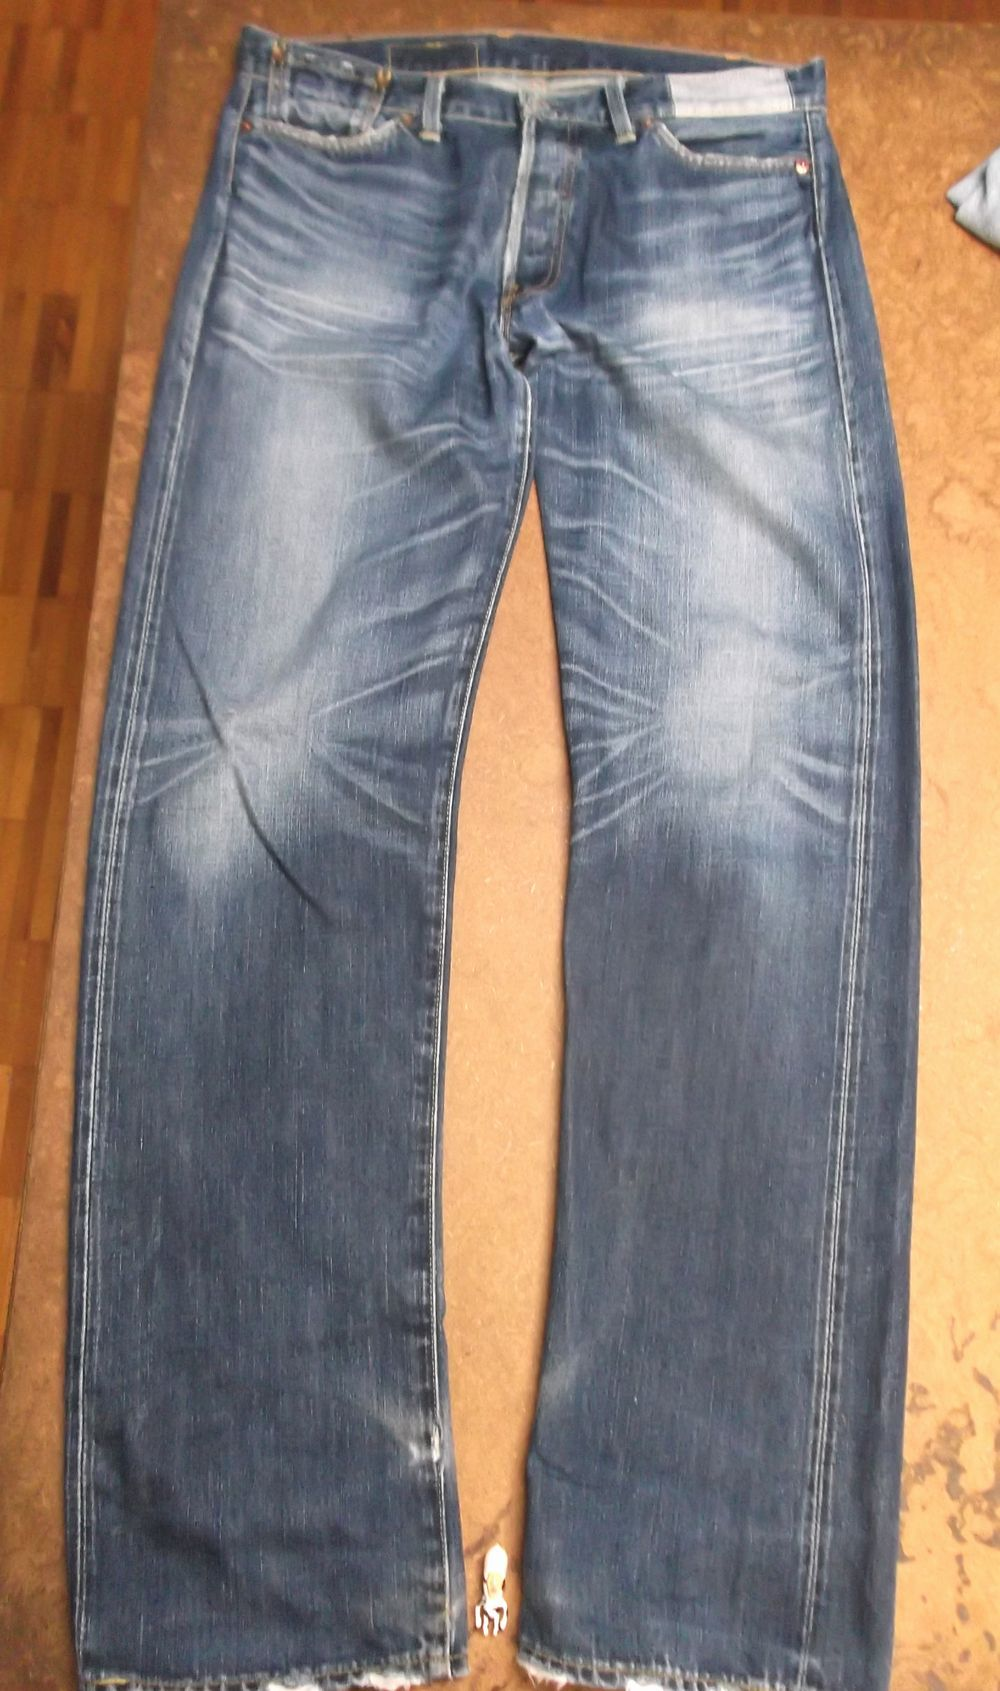 jeans1320-1